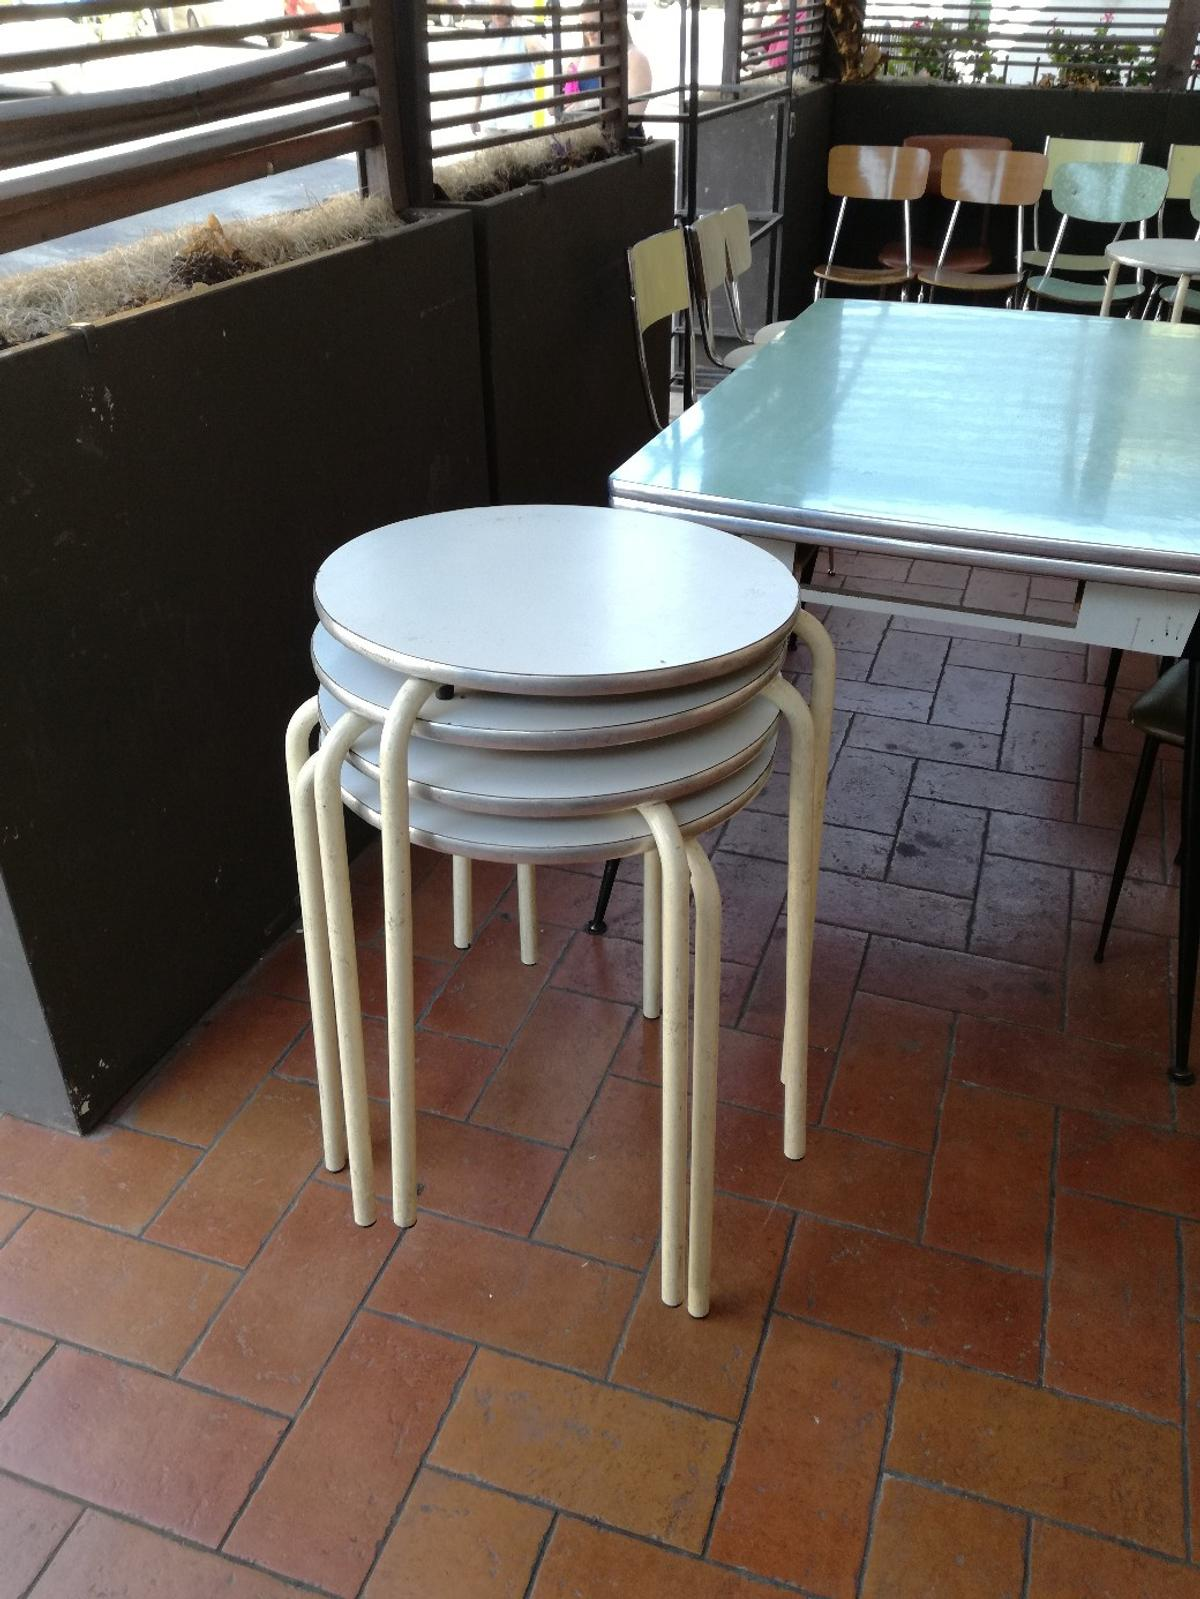 Tavoli E Sedie Vintage.Tavoli E Sedie Vintage In 00177 Roma For 100 00 For Sale Shpock